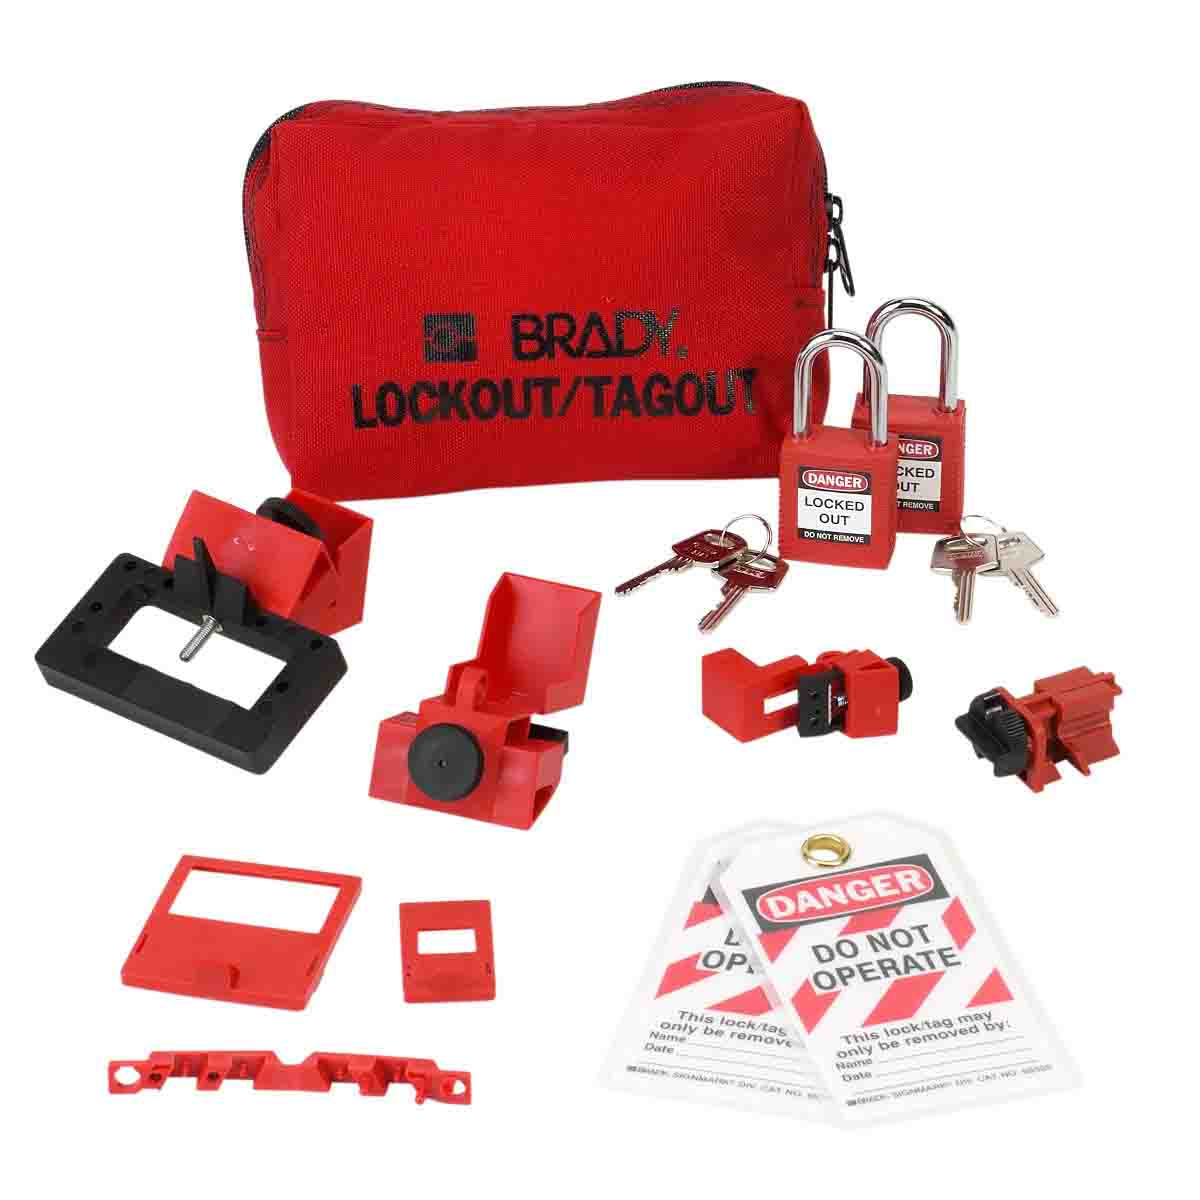 BRADY 99296 Breaker Lo Sampler KitW/Safety Locks